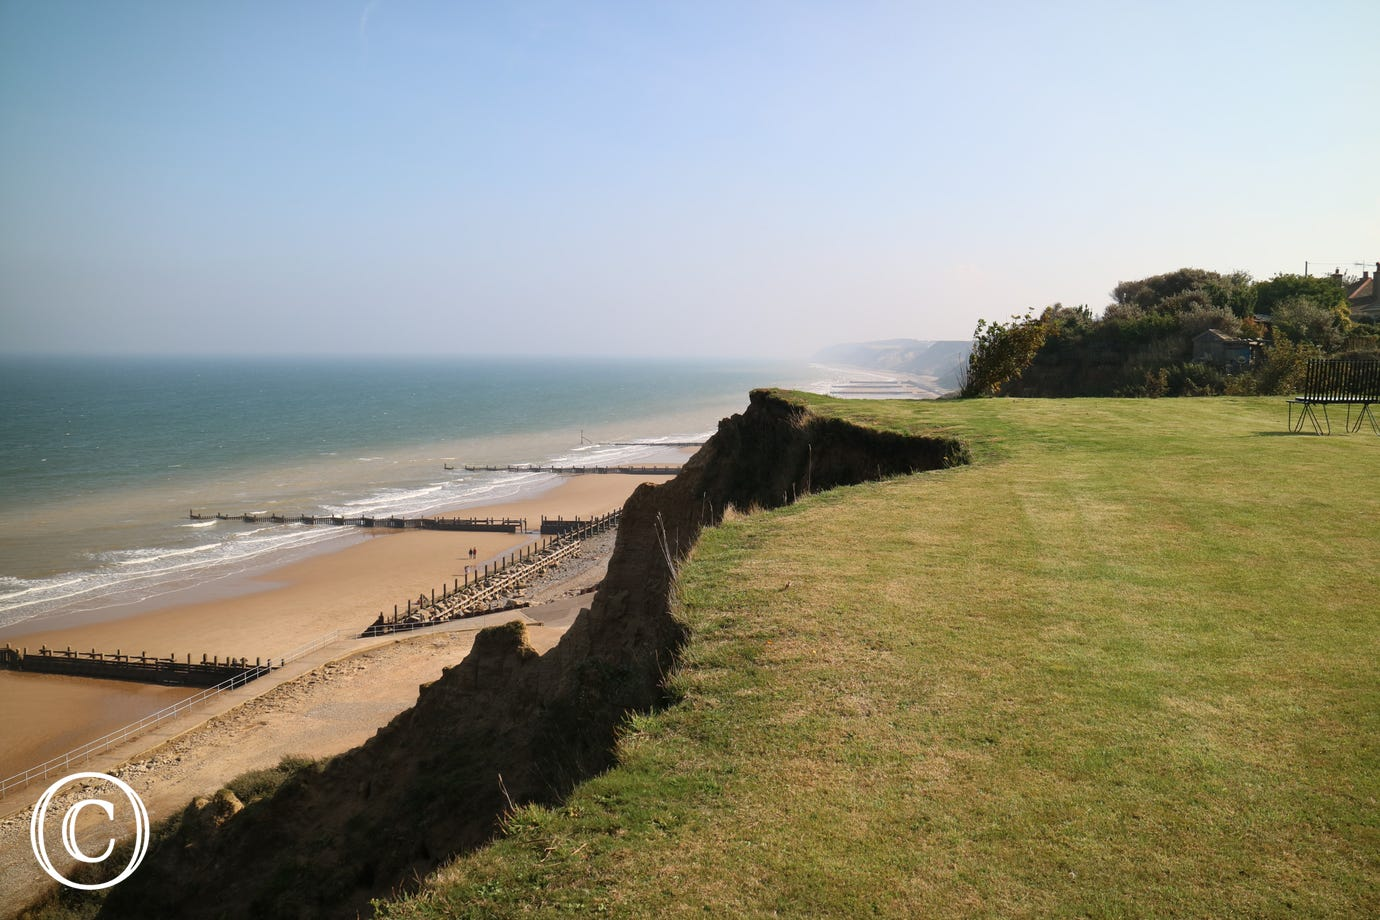 View of Overstrand beach - one of the finest beaches in north Norfolk